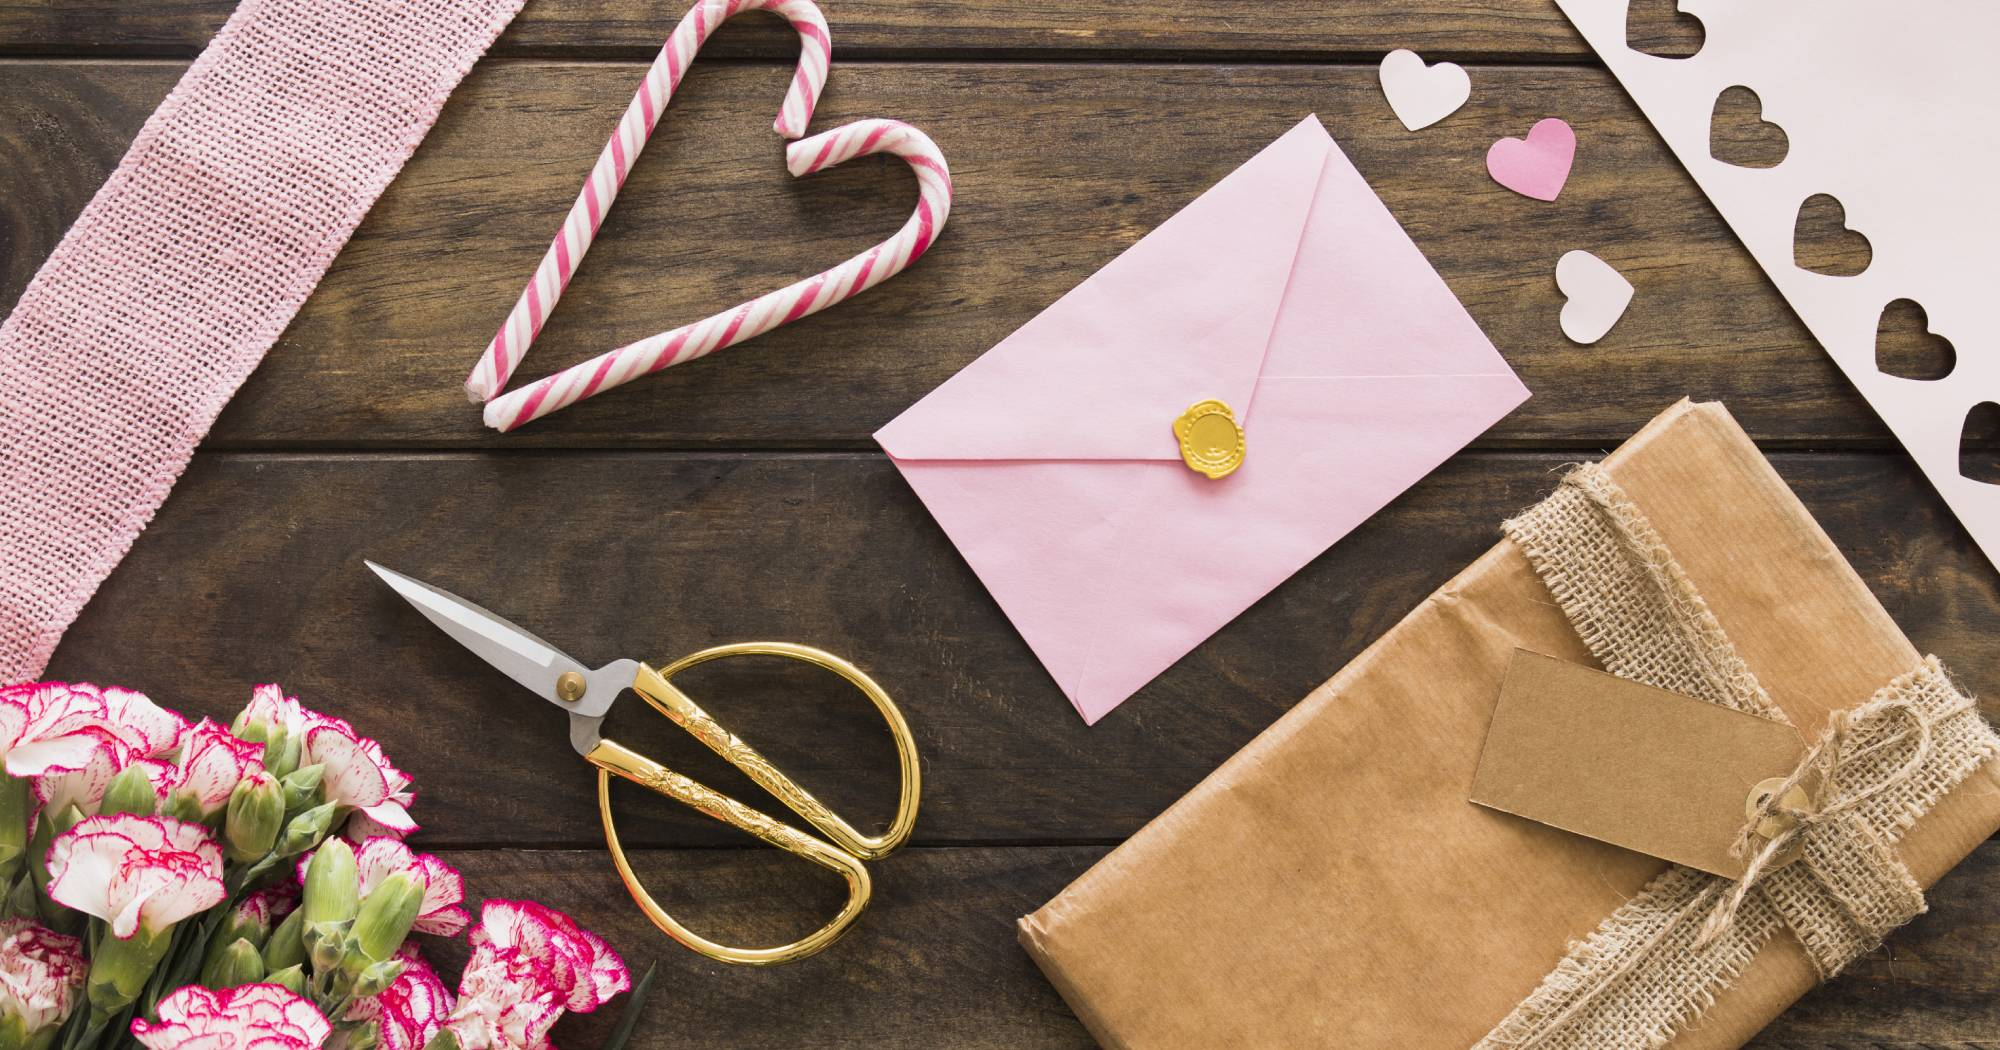 St. Valentine's Day: the Ultimate Cheat Sheet on Presents